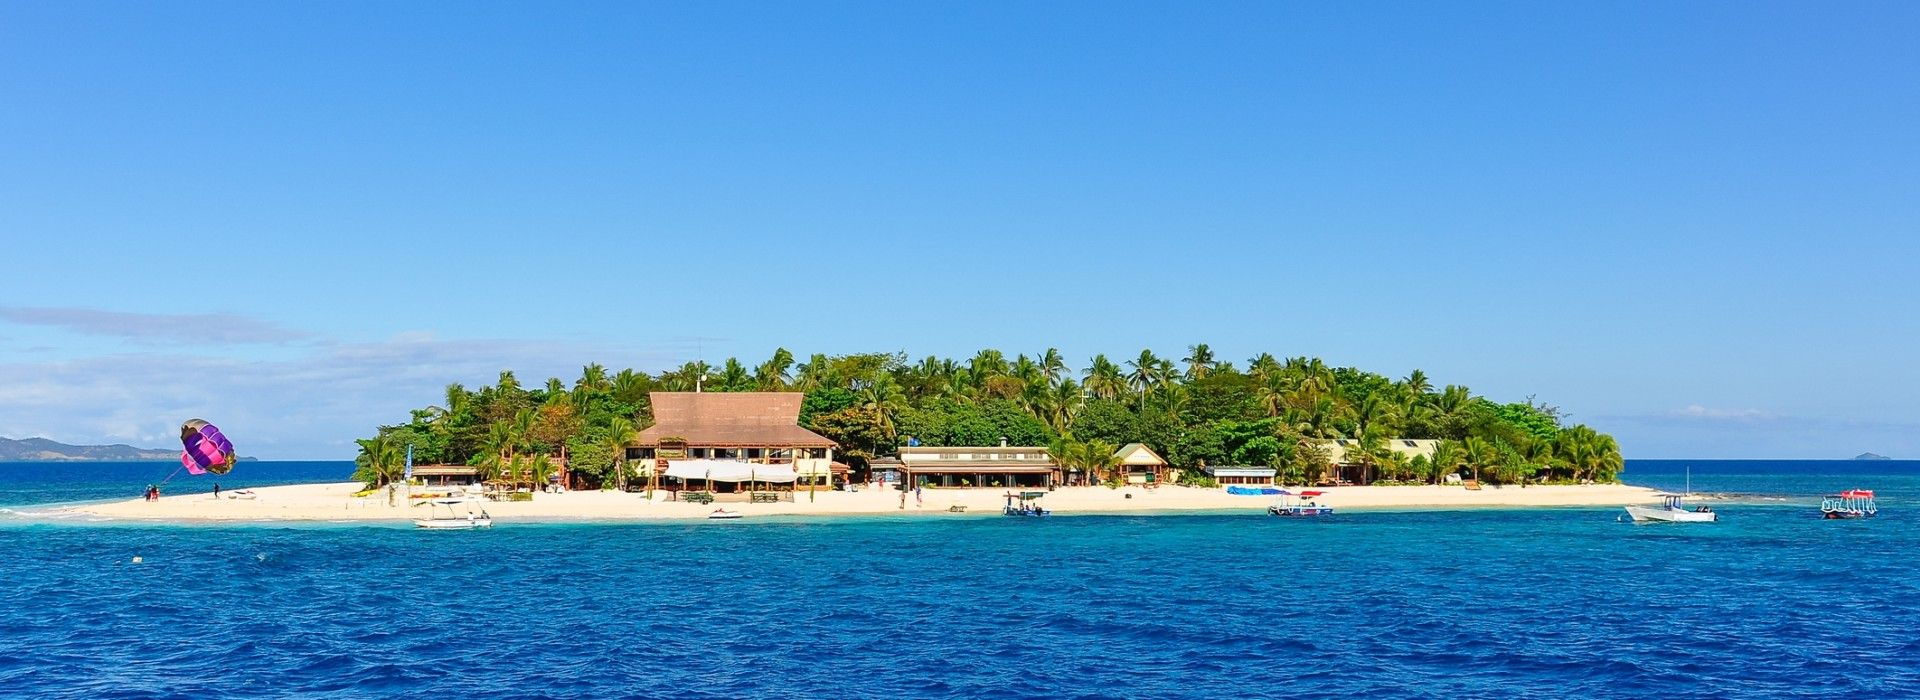 Sailing, yachting and motor boating Tours in Oceania